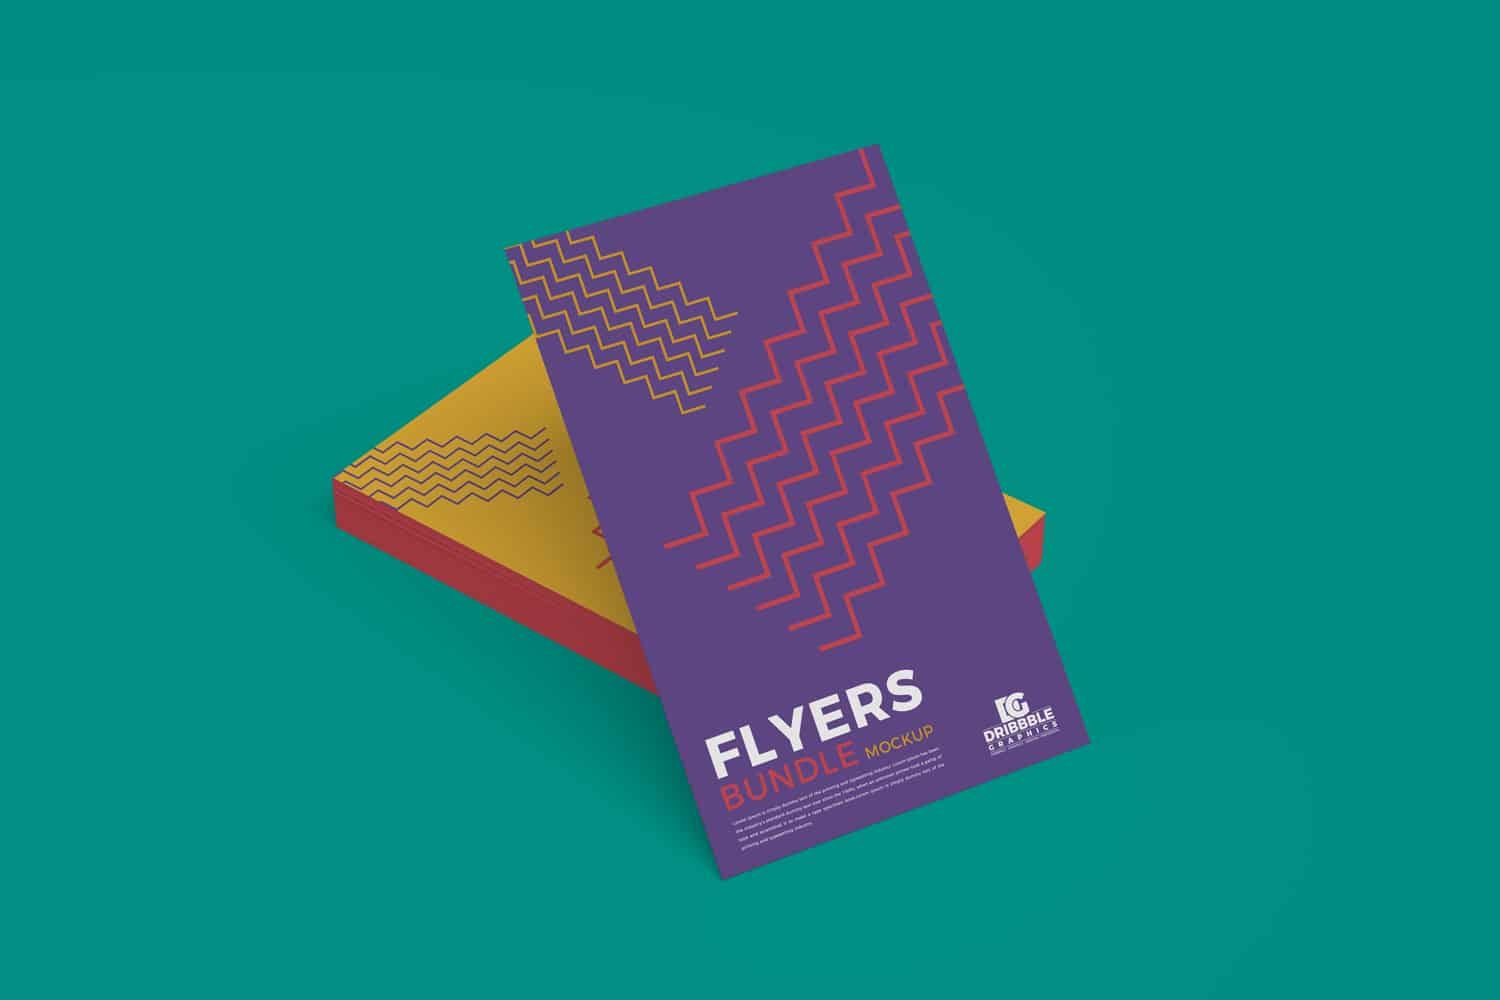 Flyers Bundle PSD Mockup Design